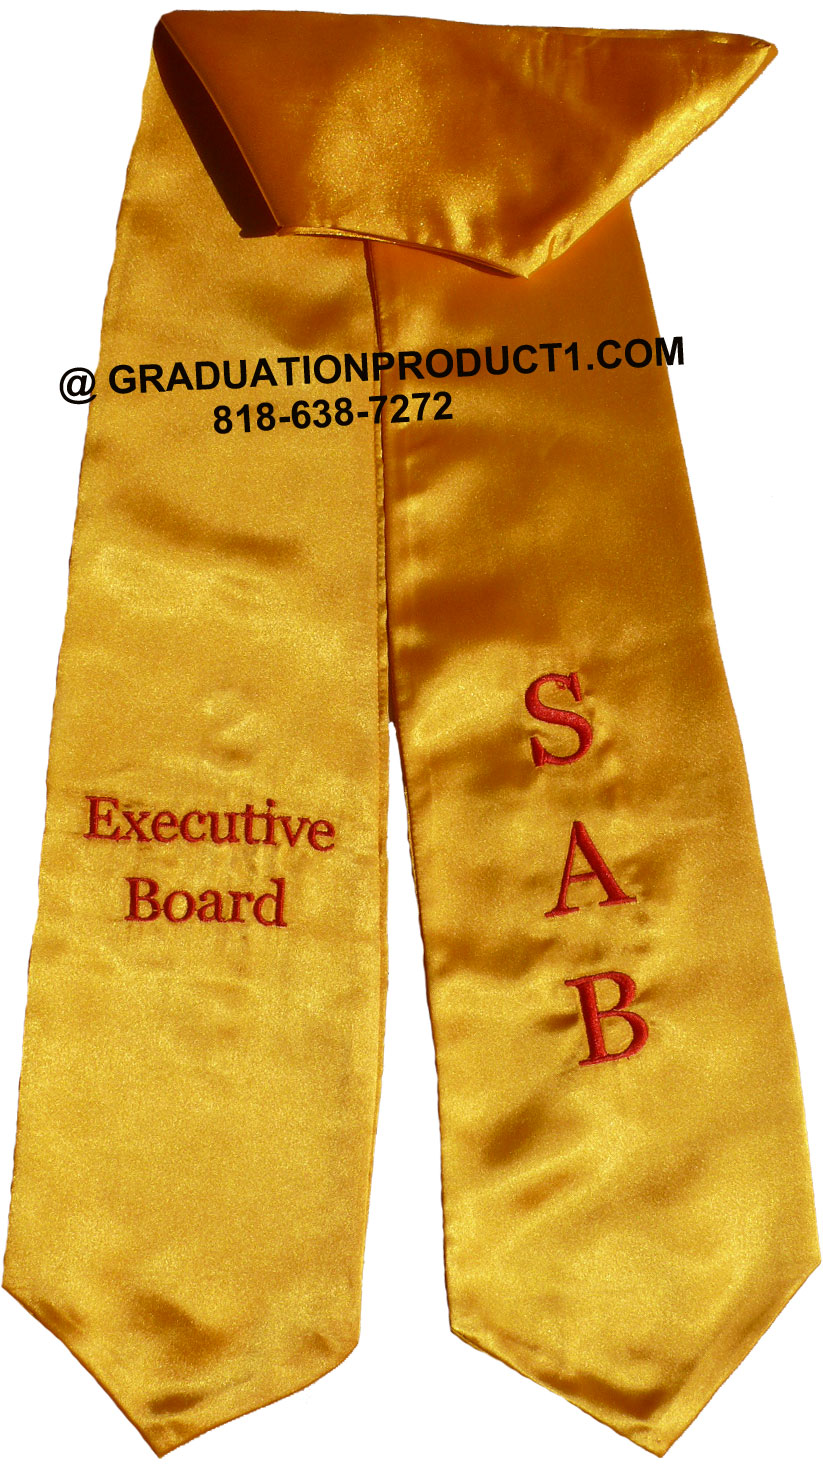 Sab Pennsylvania State System Of Higher Education Graduation Stole